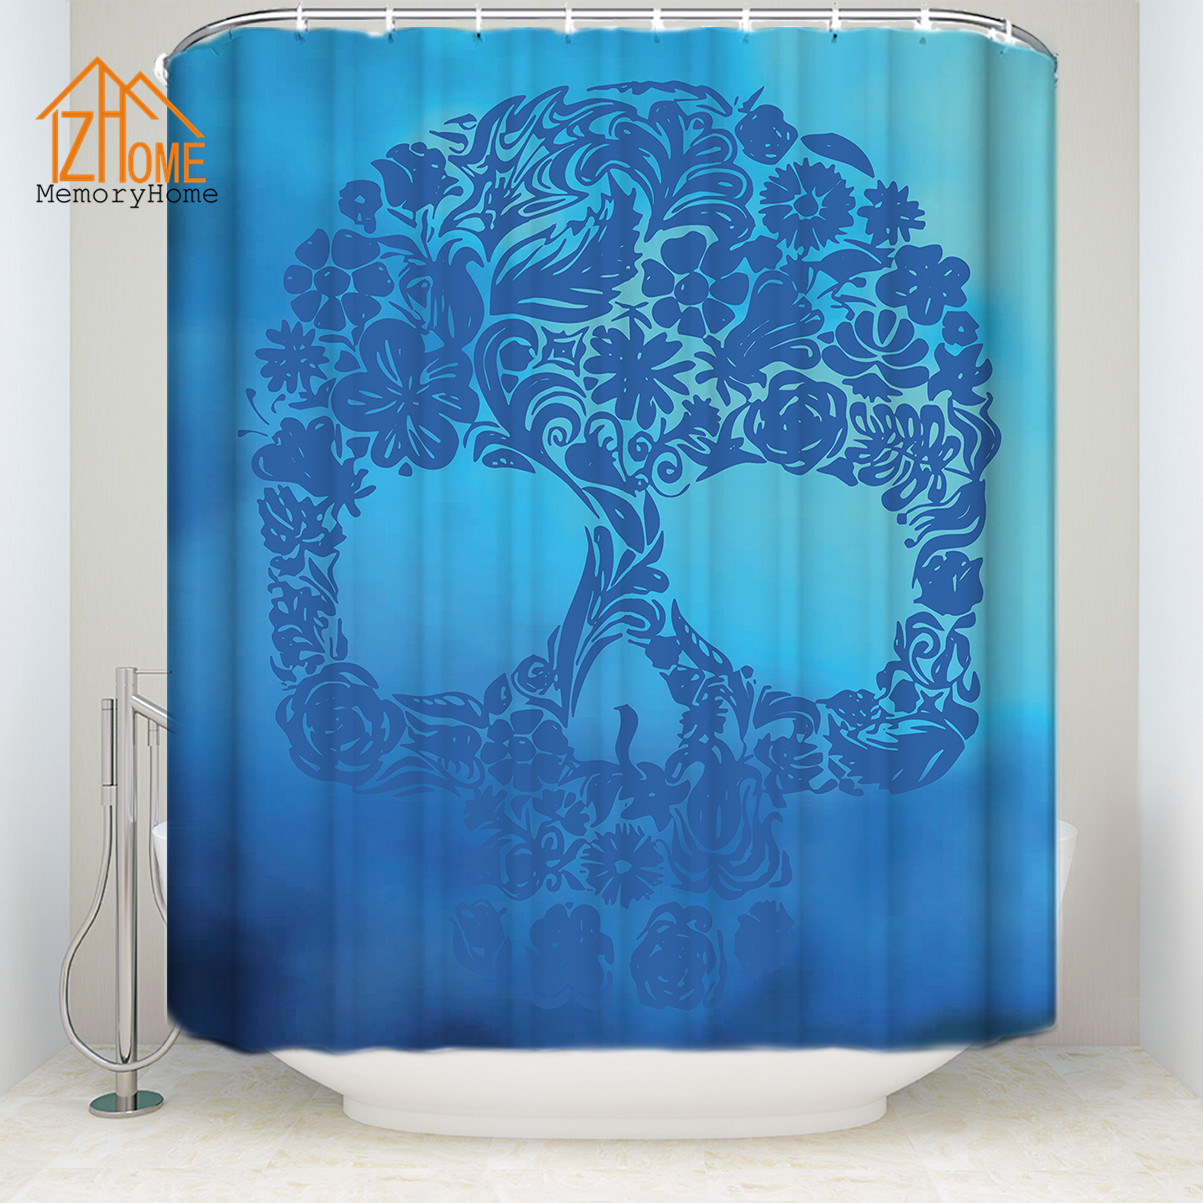 Memory Home Sugar Skull Blue Shower Curtain Bath Polyester Fabric ...